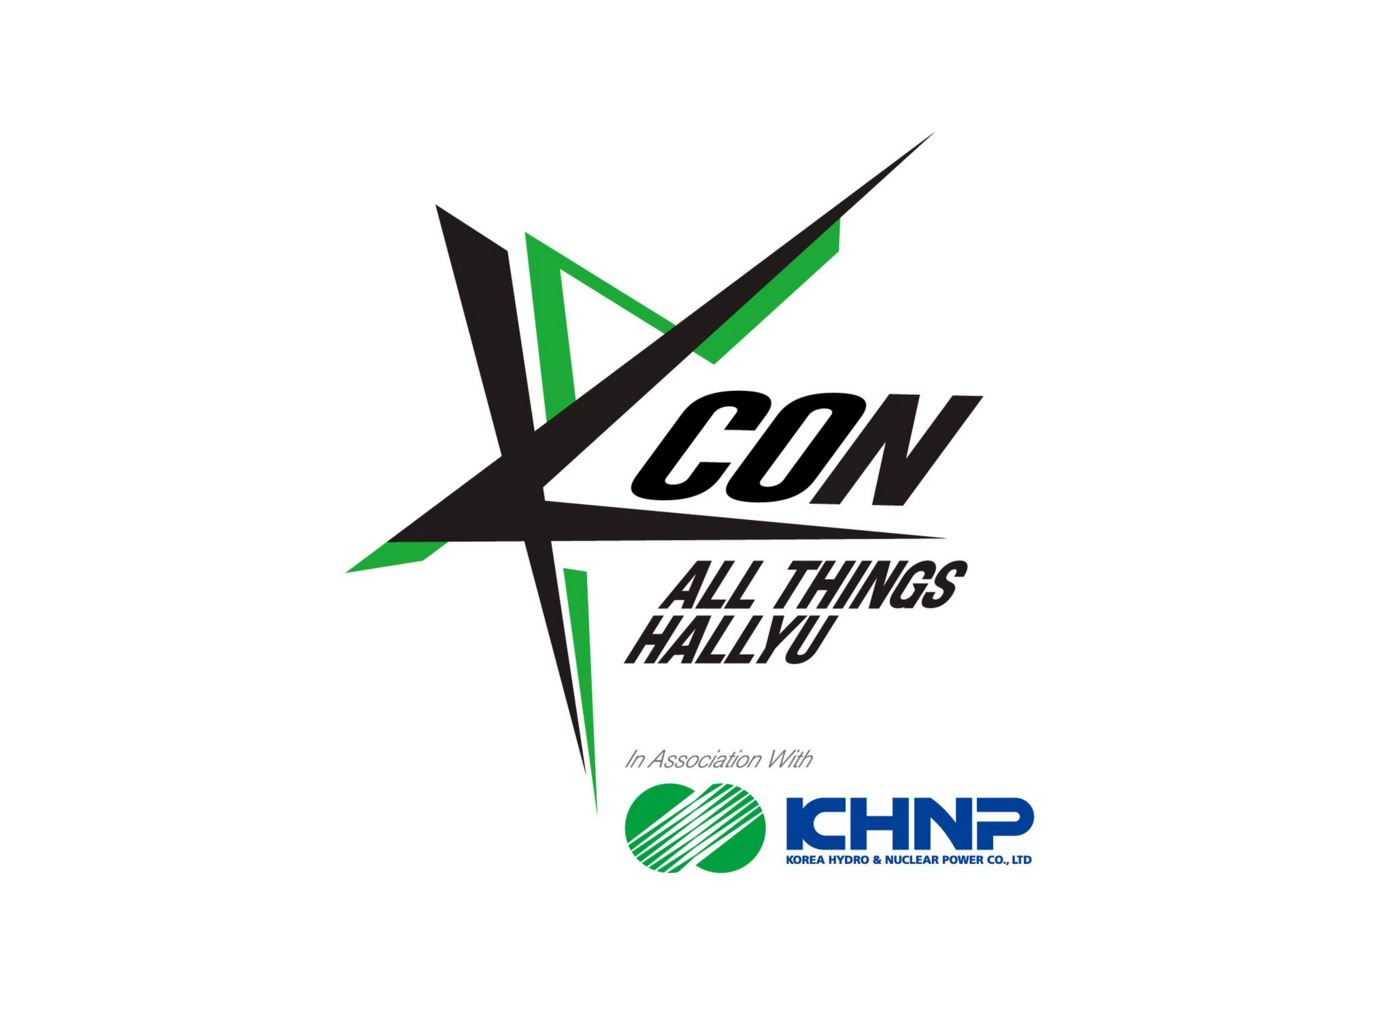 KCON to bring K-Pop and Hallyu culture to Abu Dhabi